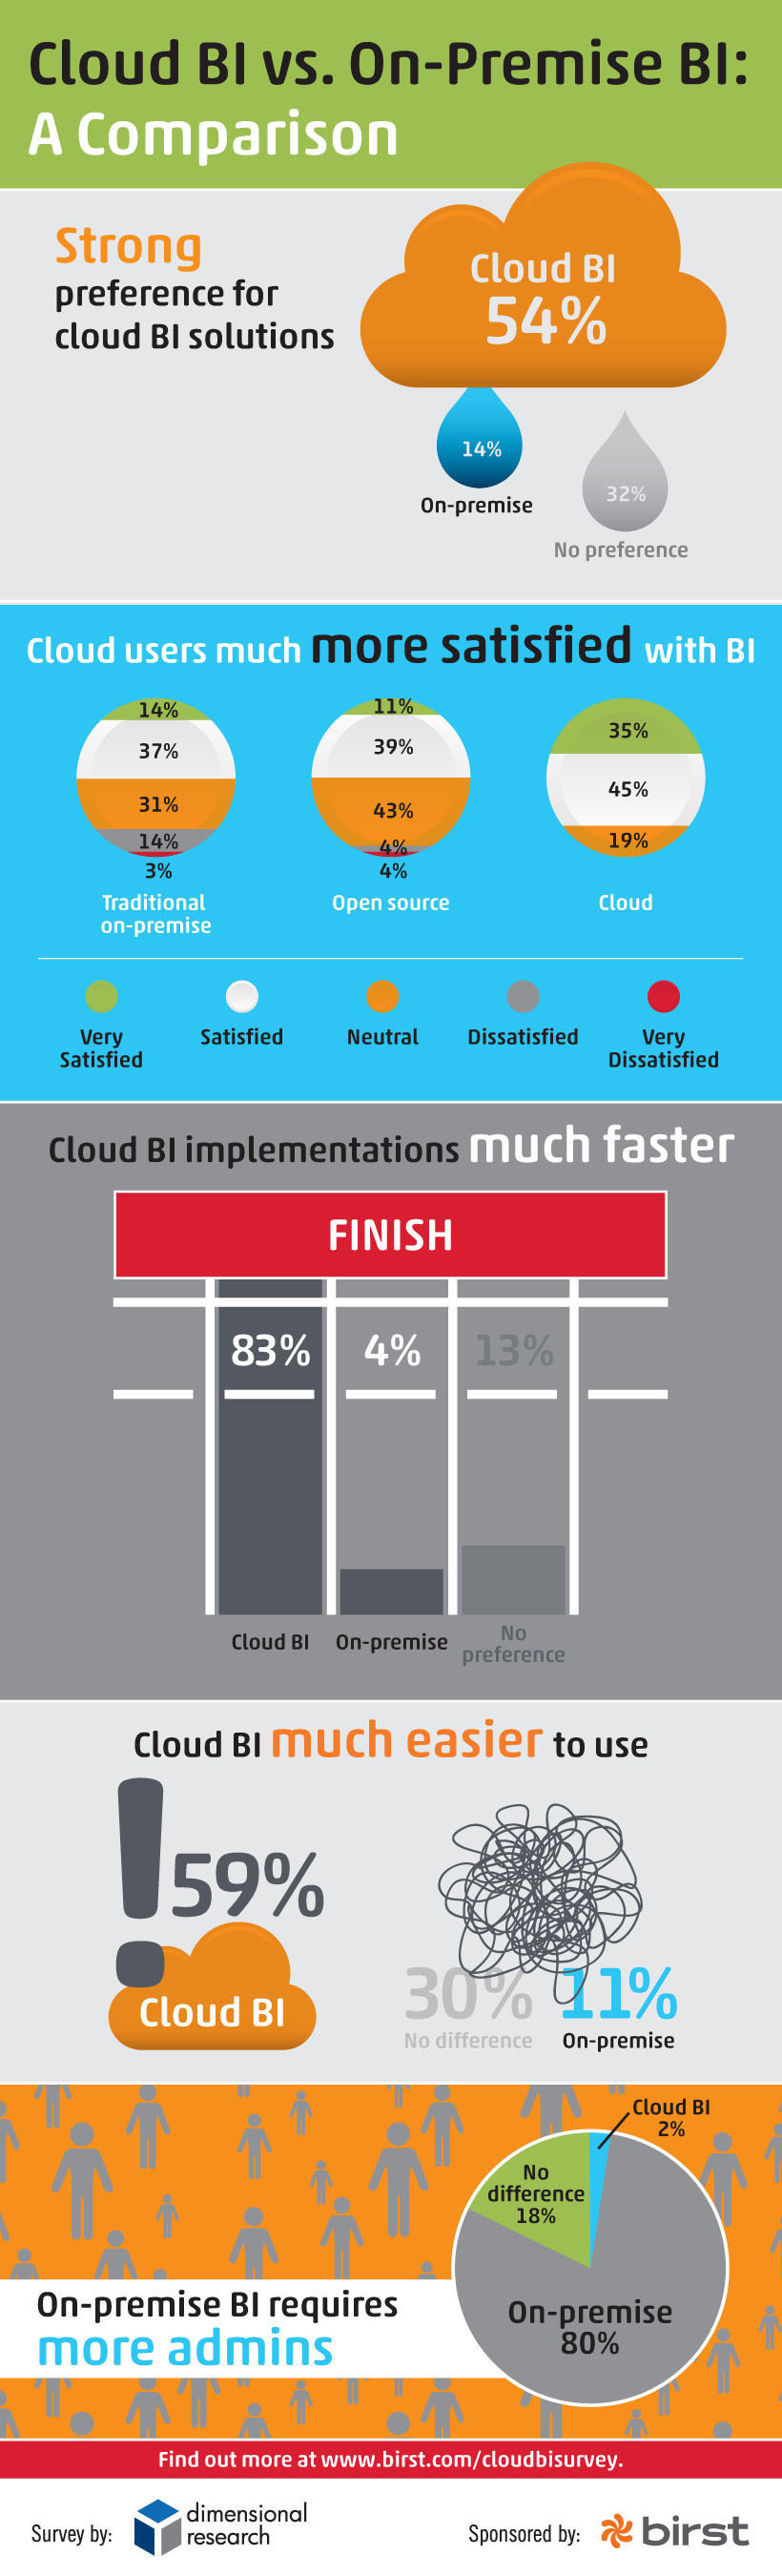 New Survey Results Show Cloud-based BI Satisfaction Outpaces On-Premise BI According to Business Intelligence Pros. (PRNewsFoto/Birst)